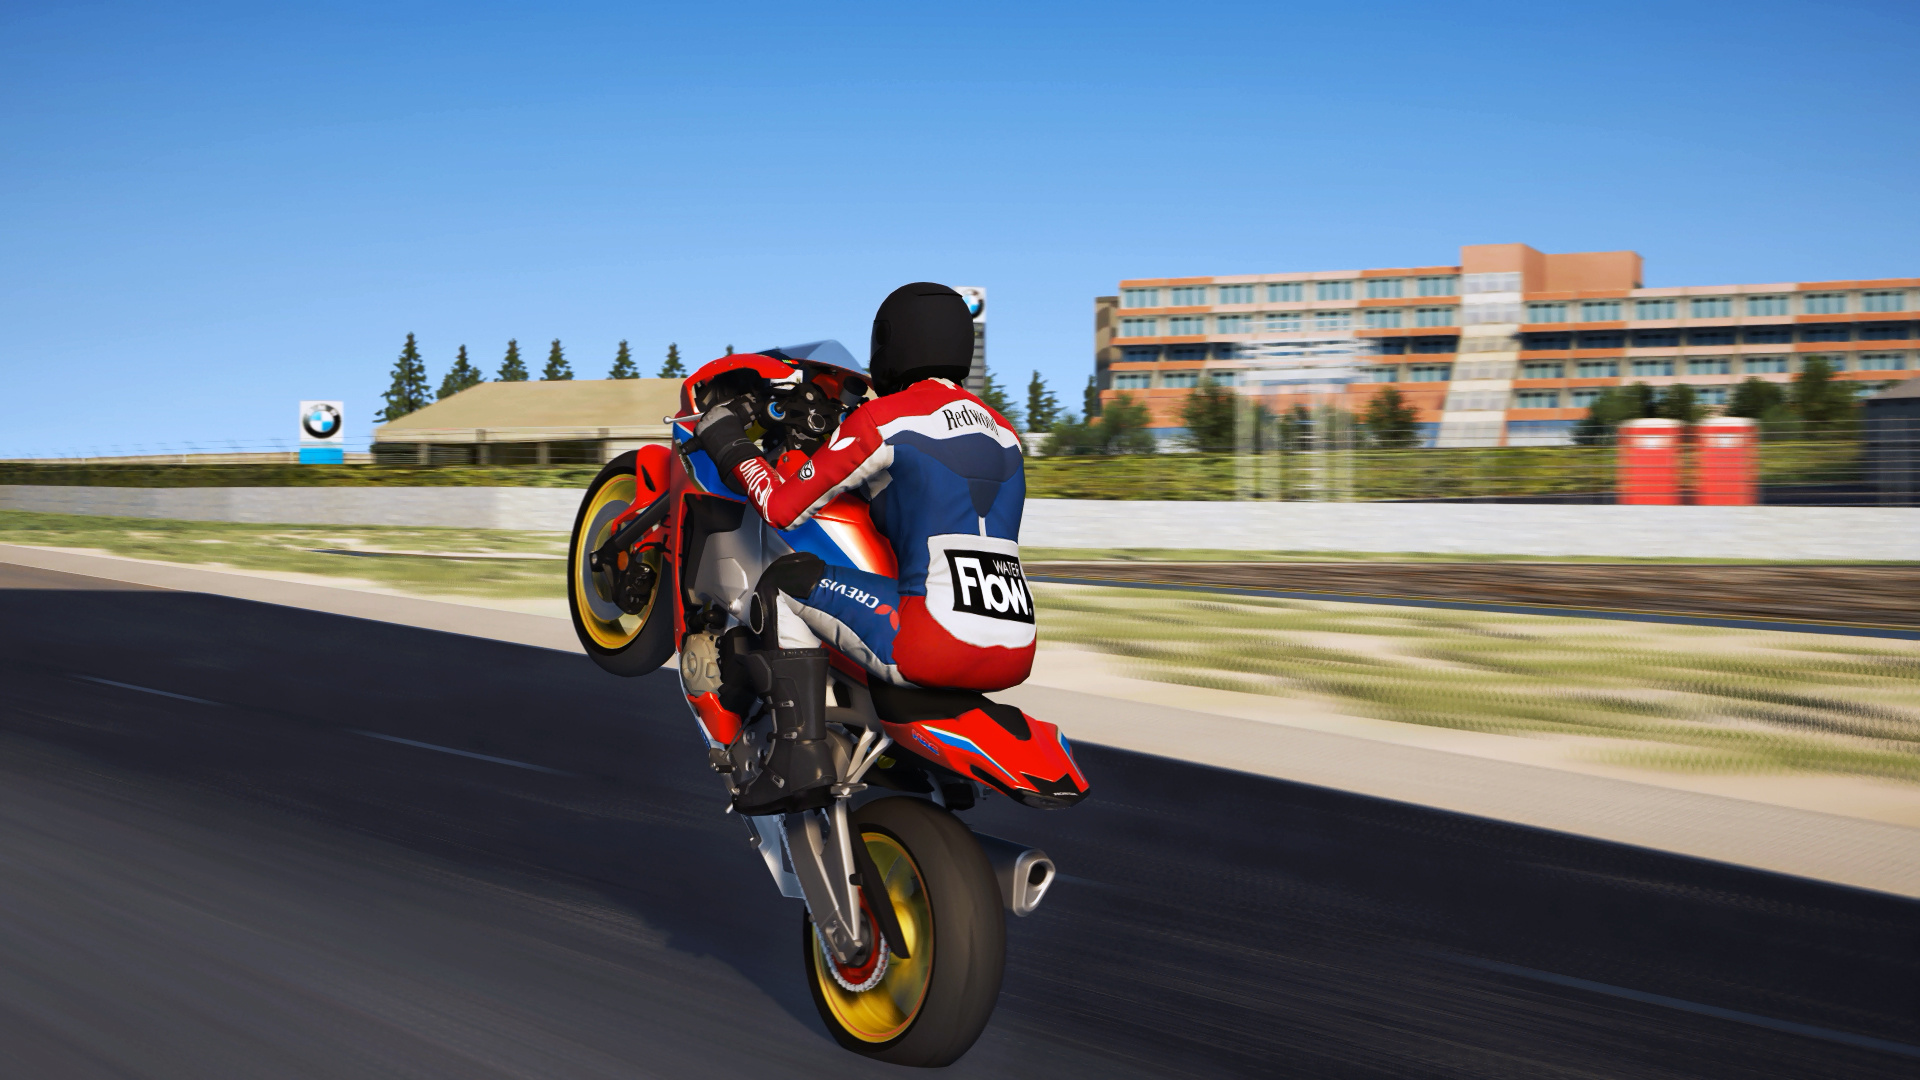 mclaren mercedes mp4 25 with 2017 Honda Cbr1000rr Sp2 Add On  Ment 1230231 on Kali Linux Dragon 090946f7886ae7cf additionally Photo 25 besides By The Numbers Worlds Greatest Drag Race 1 4 together with Watch additionally 605 Mclaren Formula 1 2014 Car Wallpaper 4.